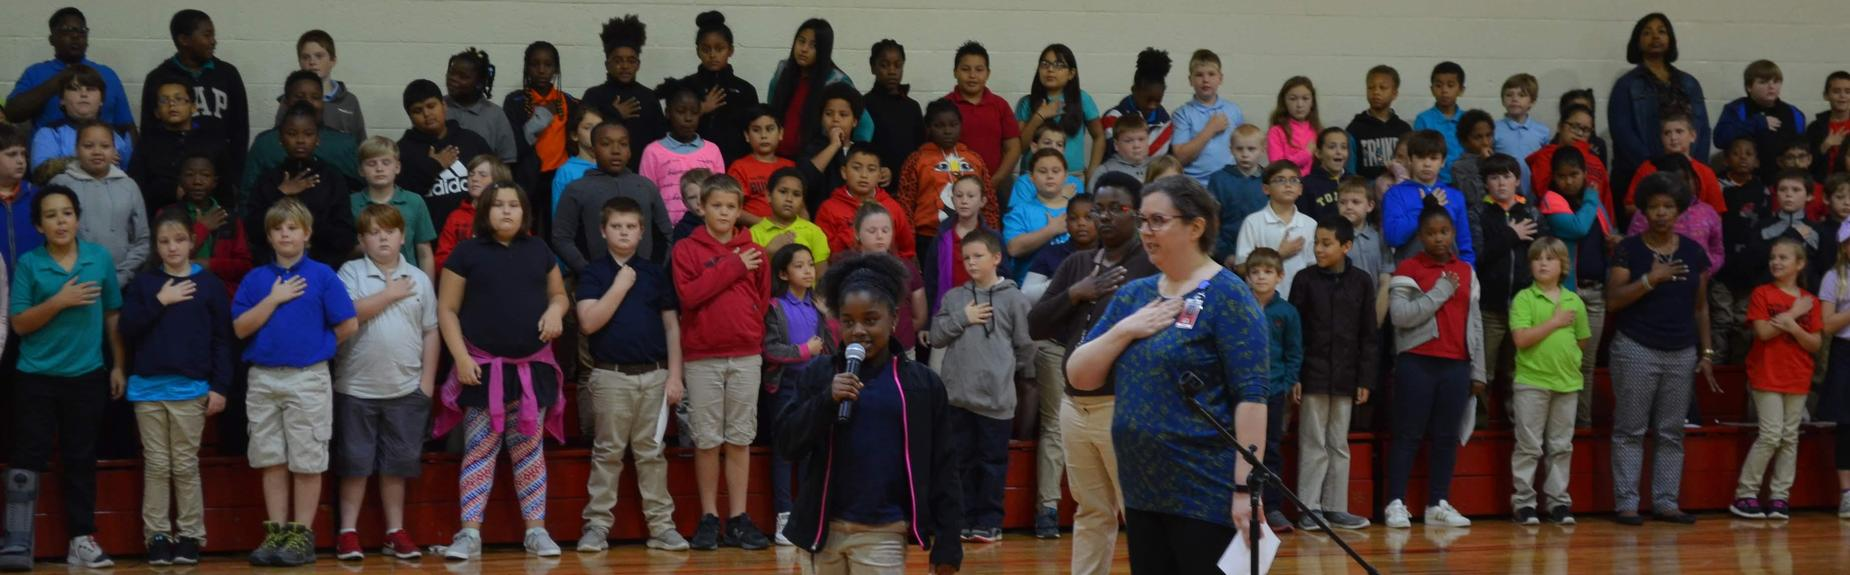 students in gym saying the Pledge of Allegiance